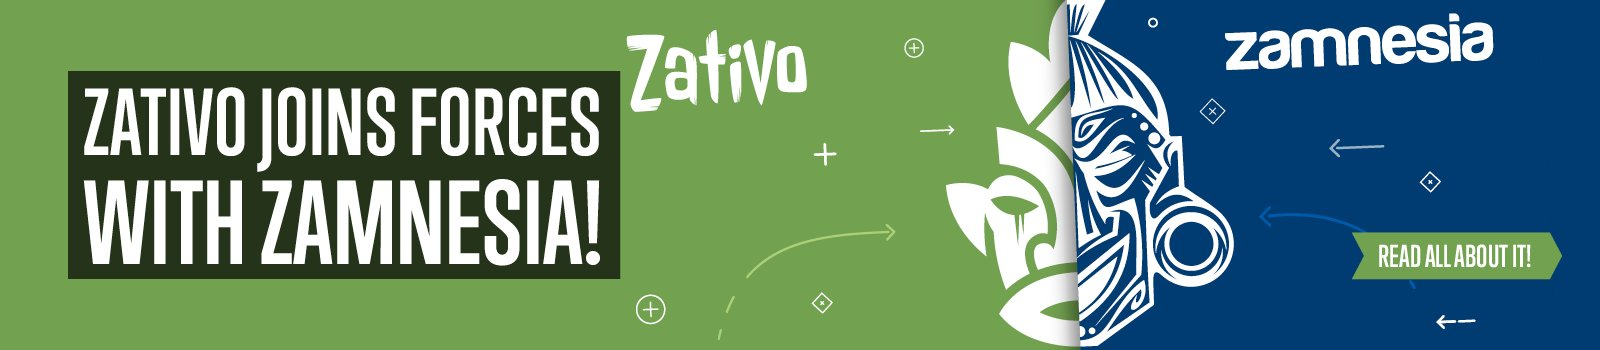 For growers, smokers and psychonauts - Zativo